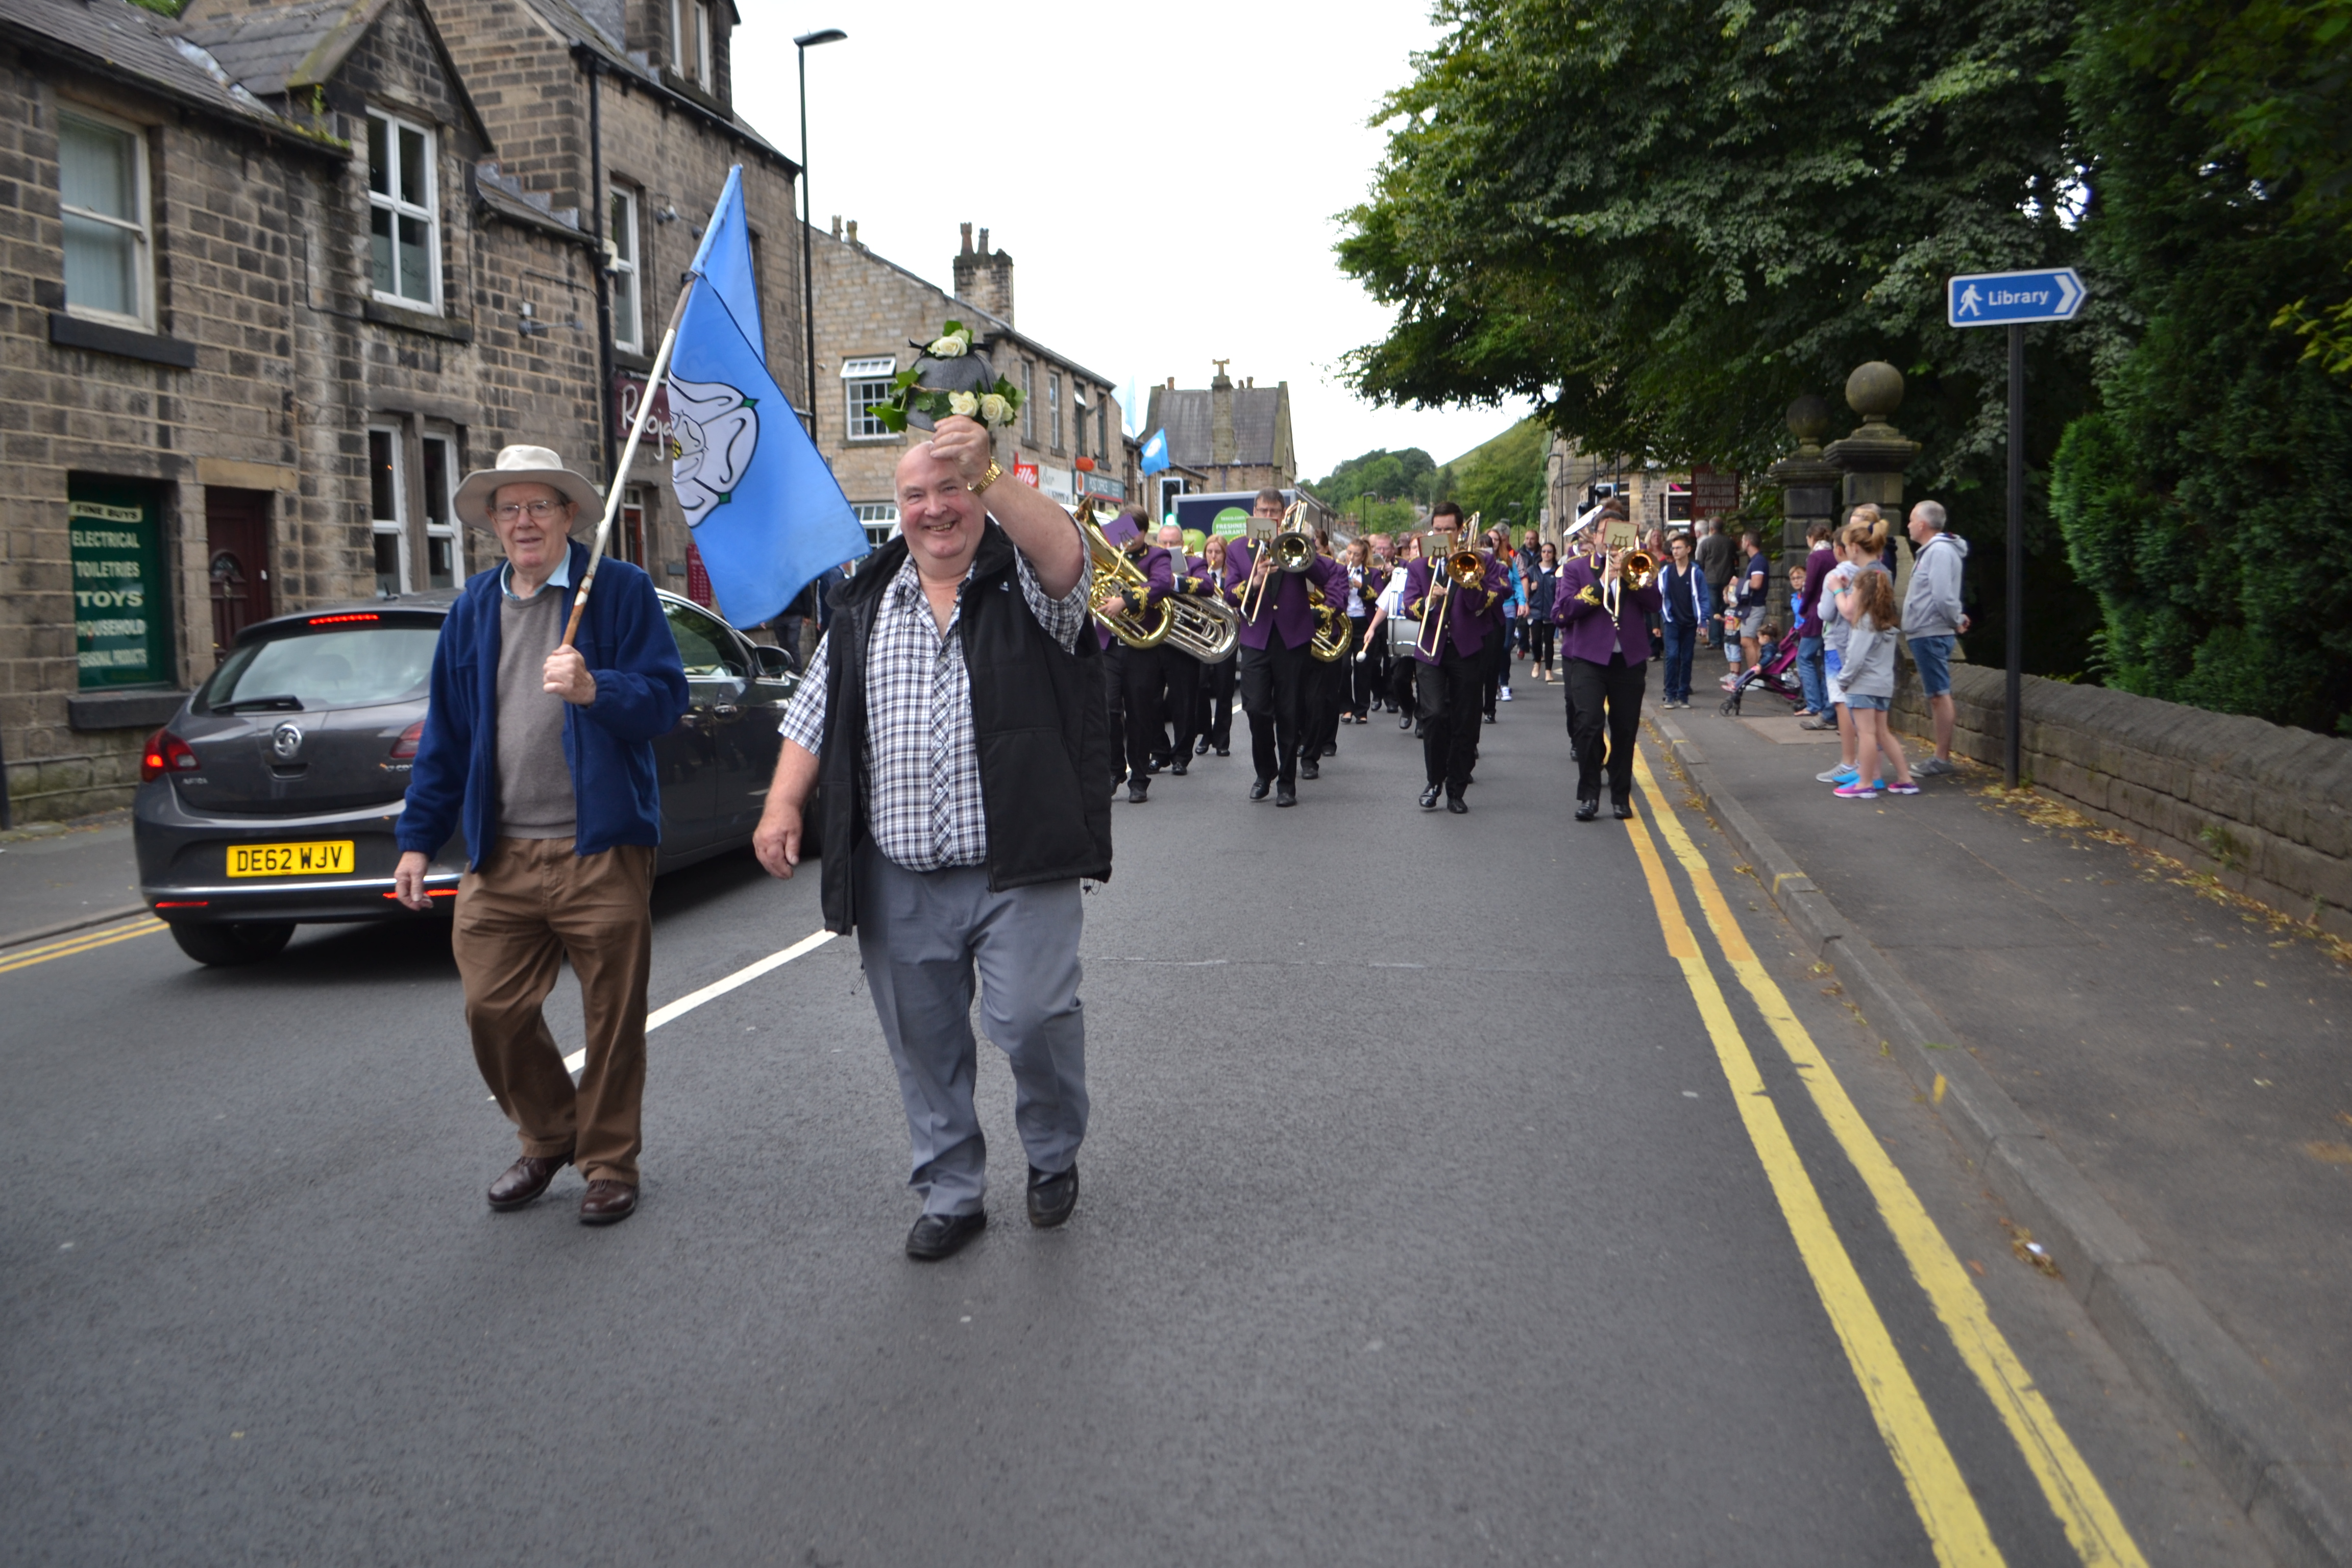 Oliver Benson and Bob Rodgers lead the procession to the County Fair